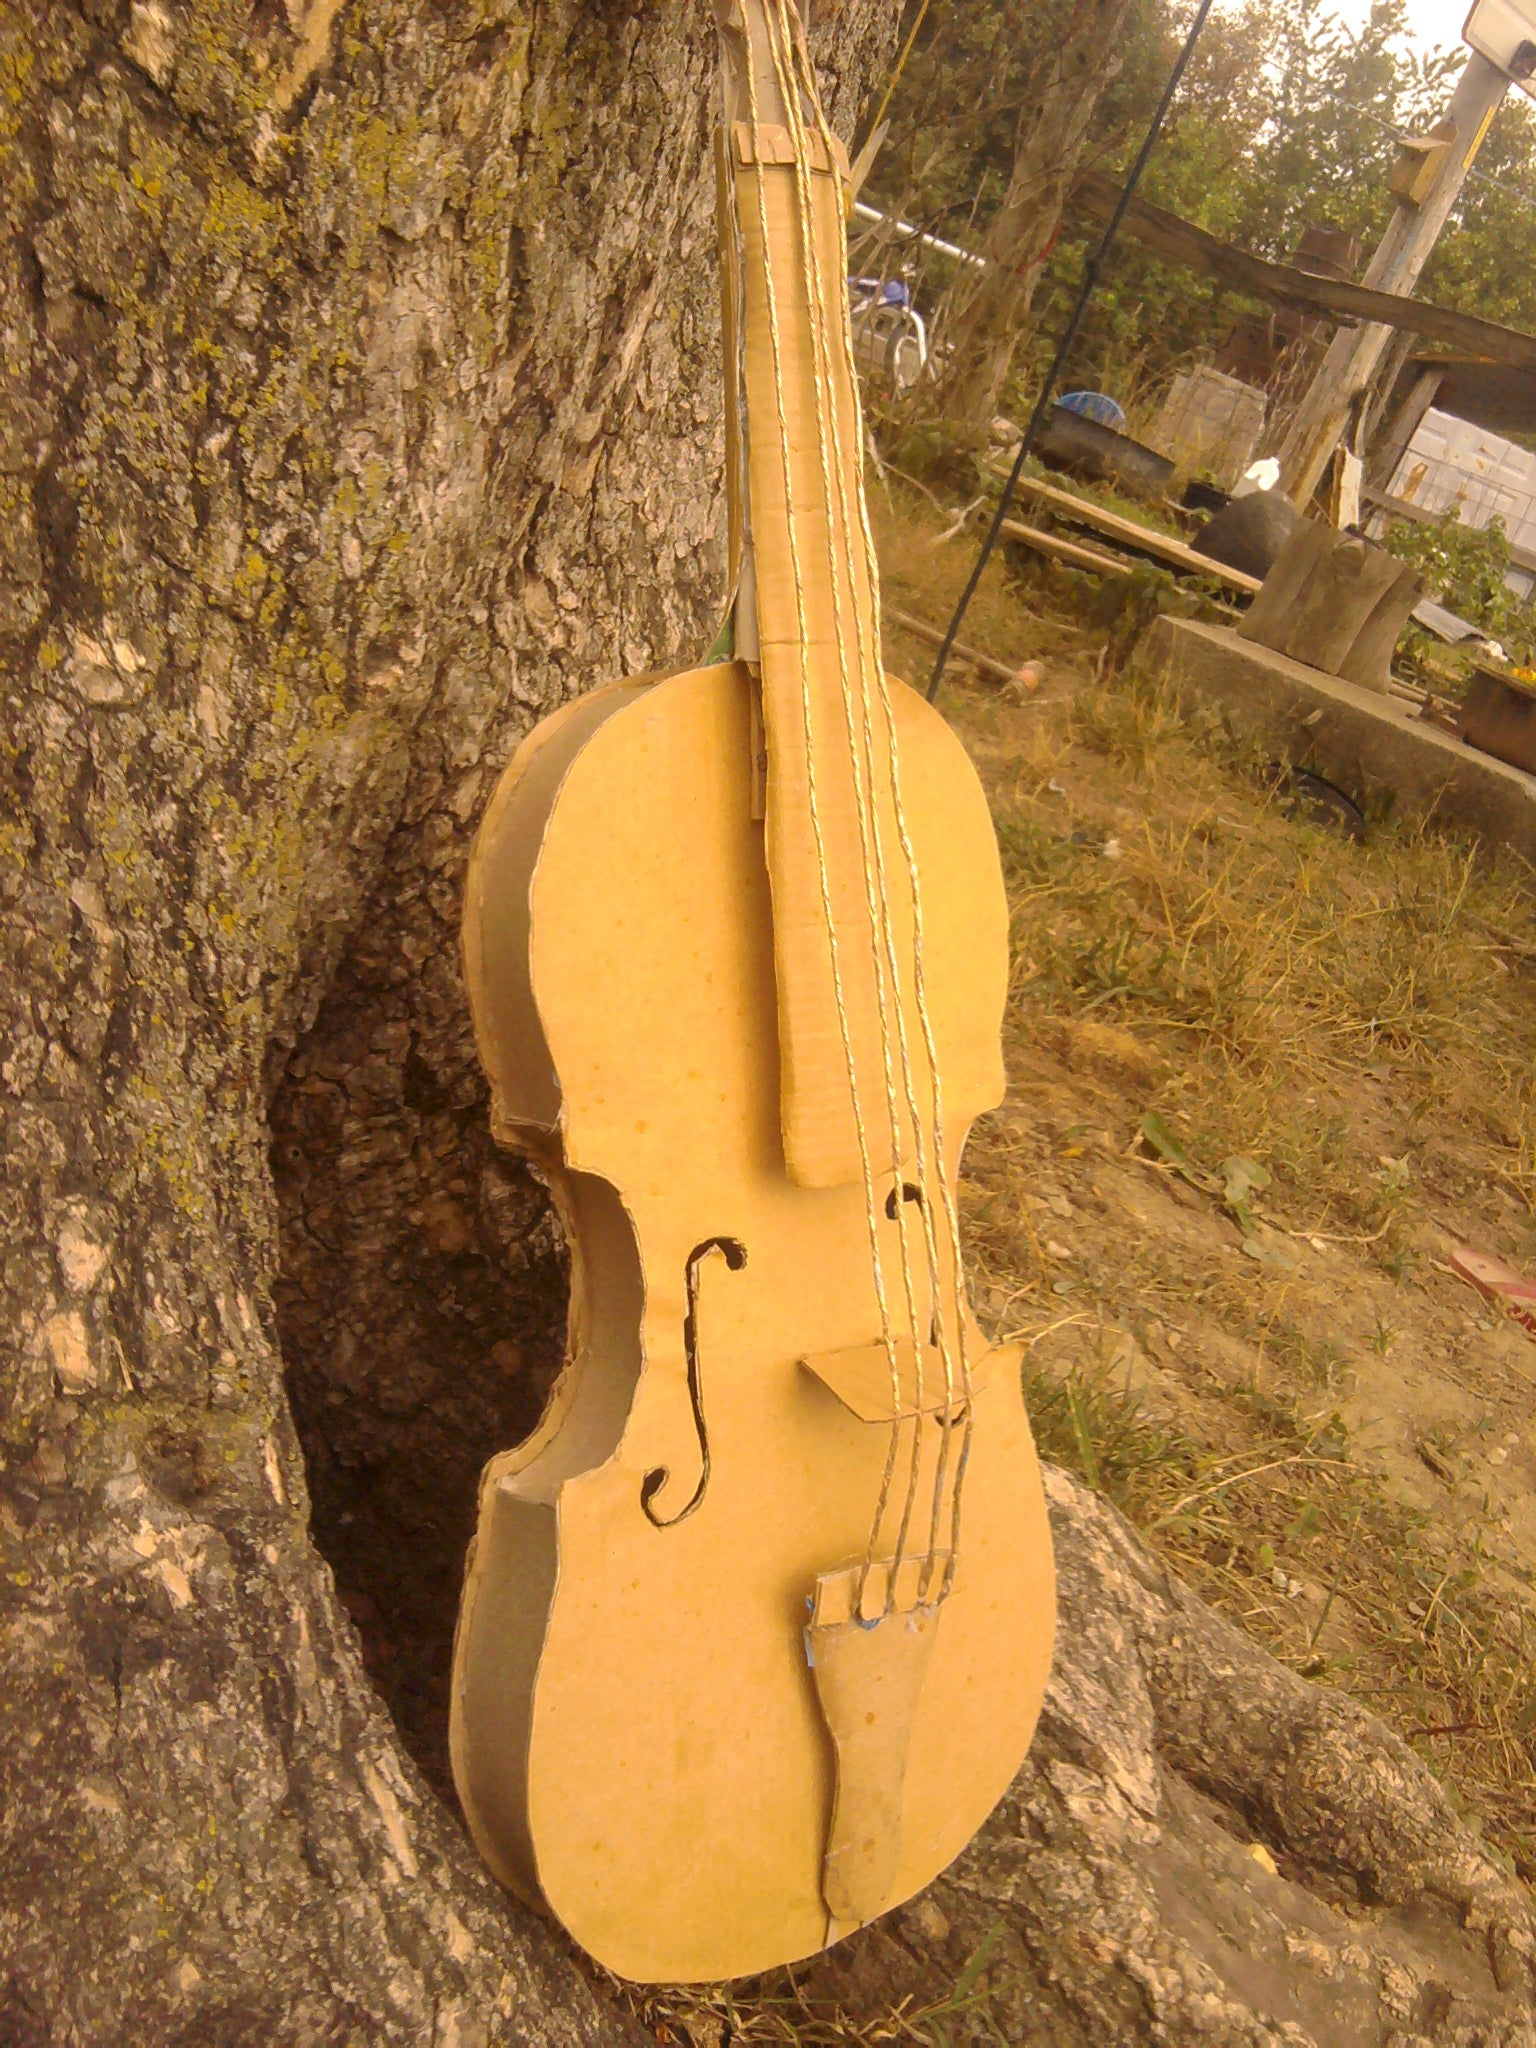 Card Board Violin (with Pictures)